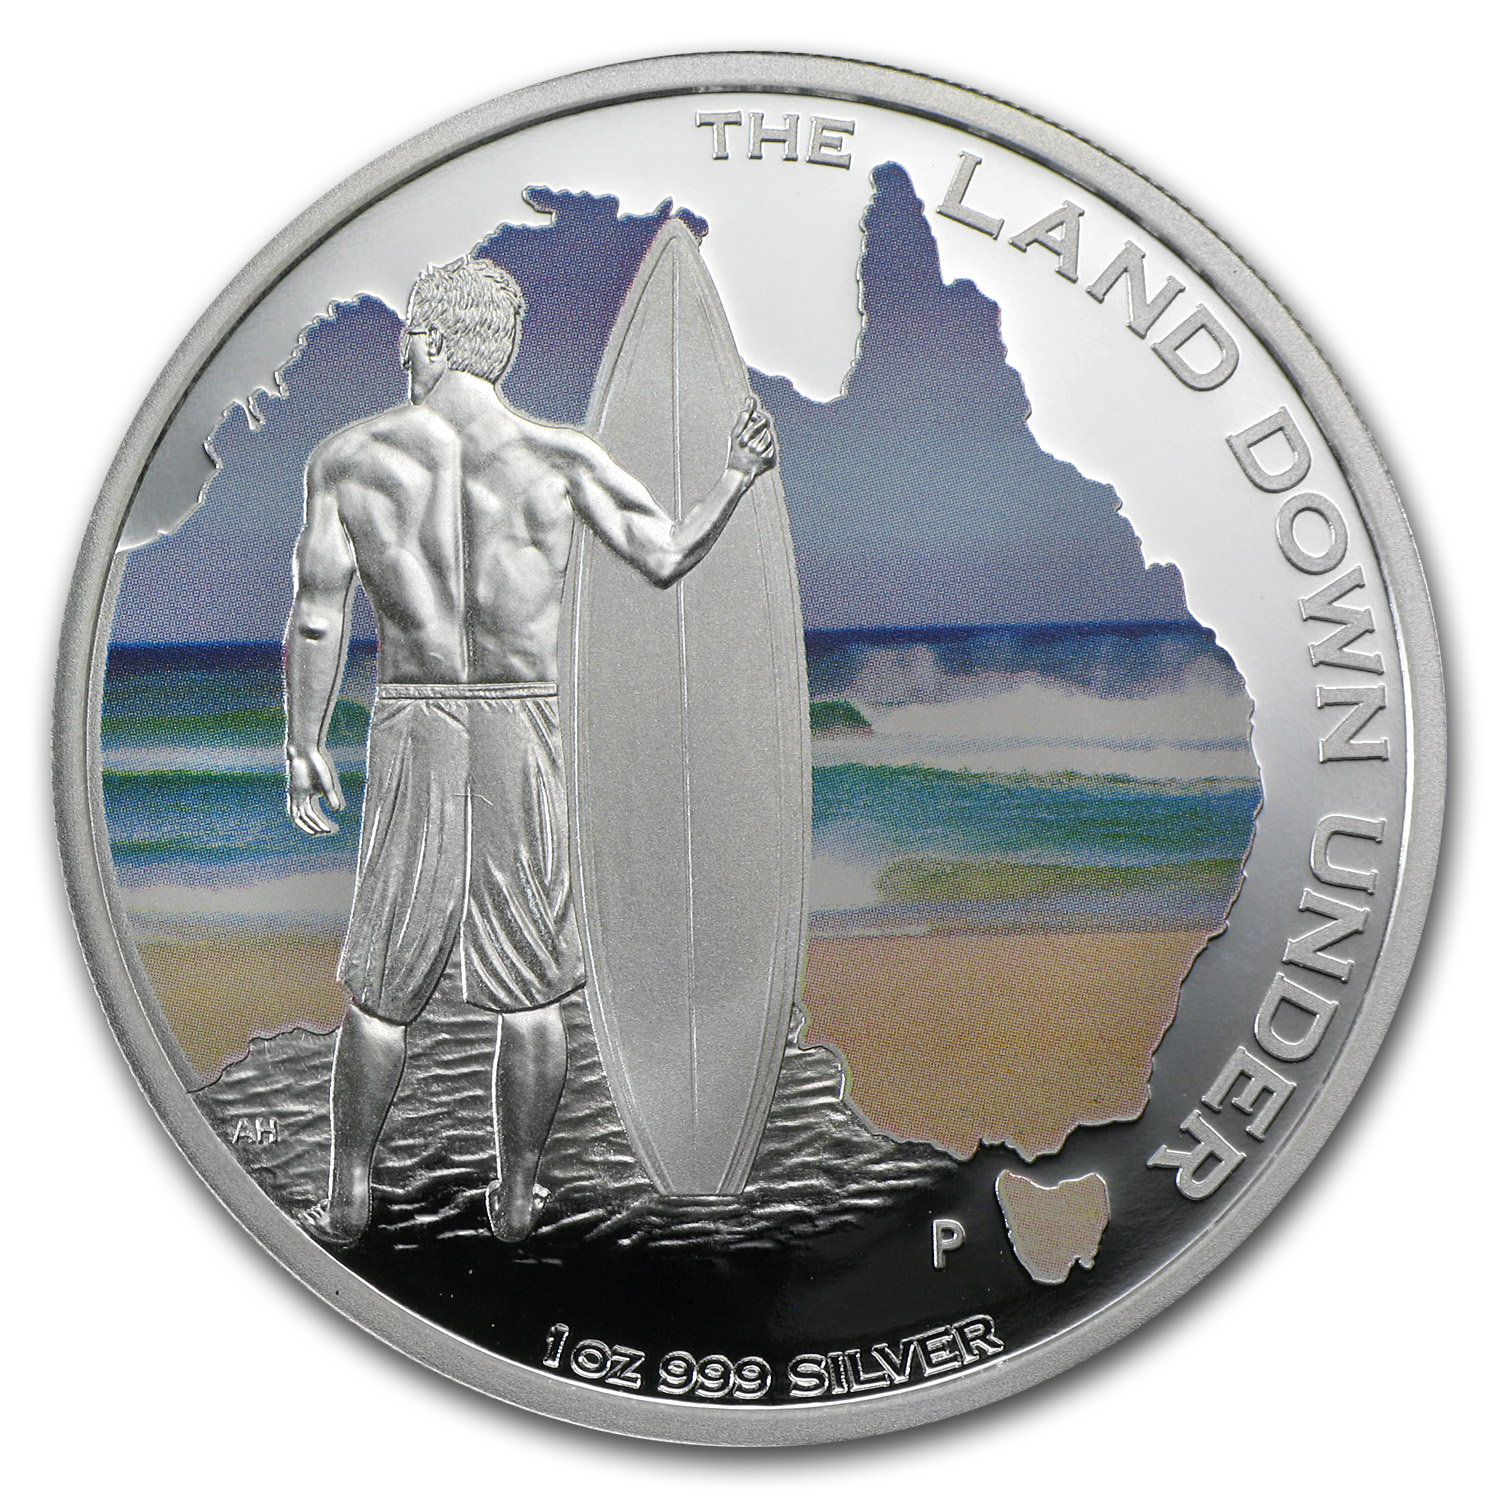 2013 1 oz Silver Australian The Land Down Under Proof (Surfing)